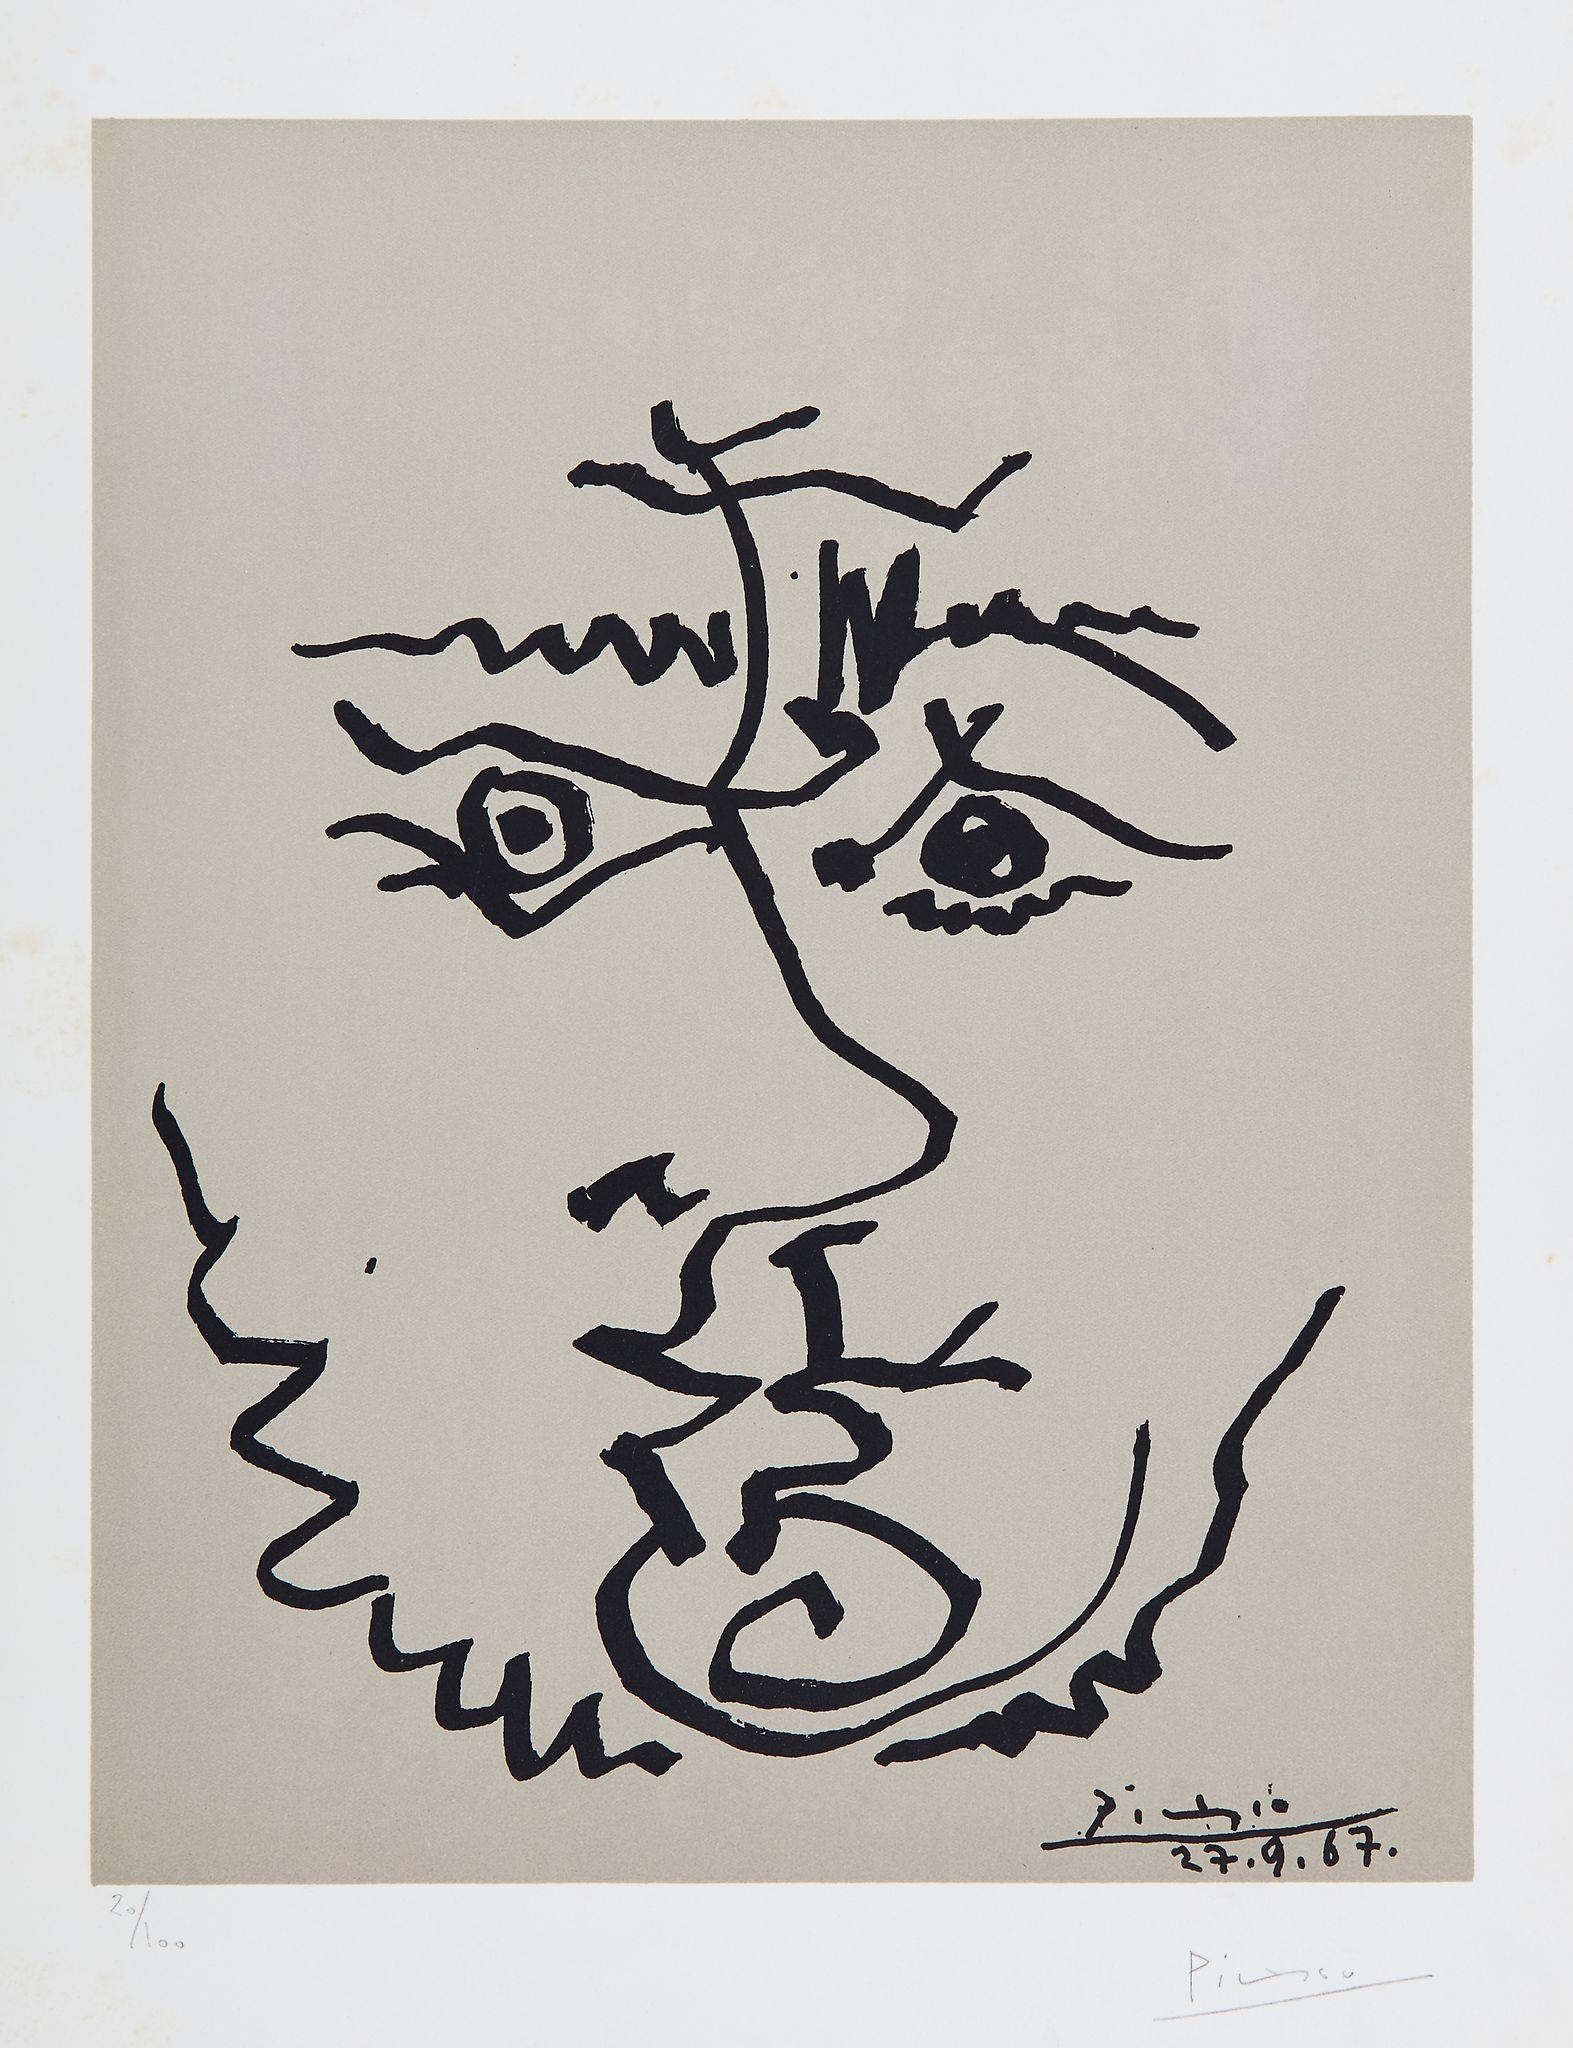 Visage by Pablo Picasso